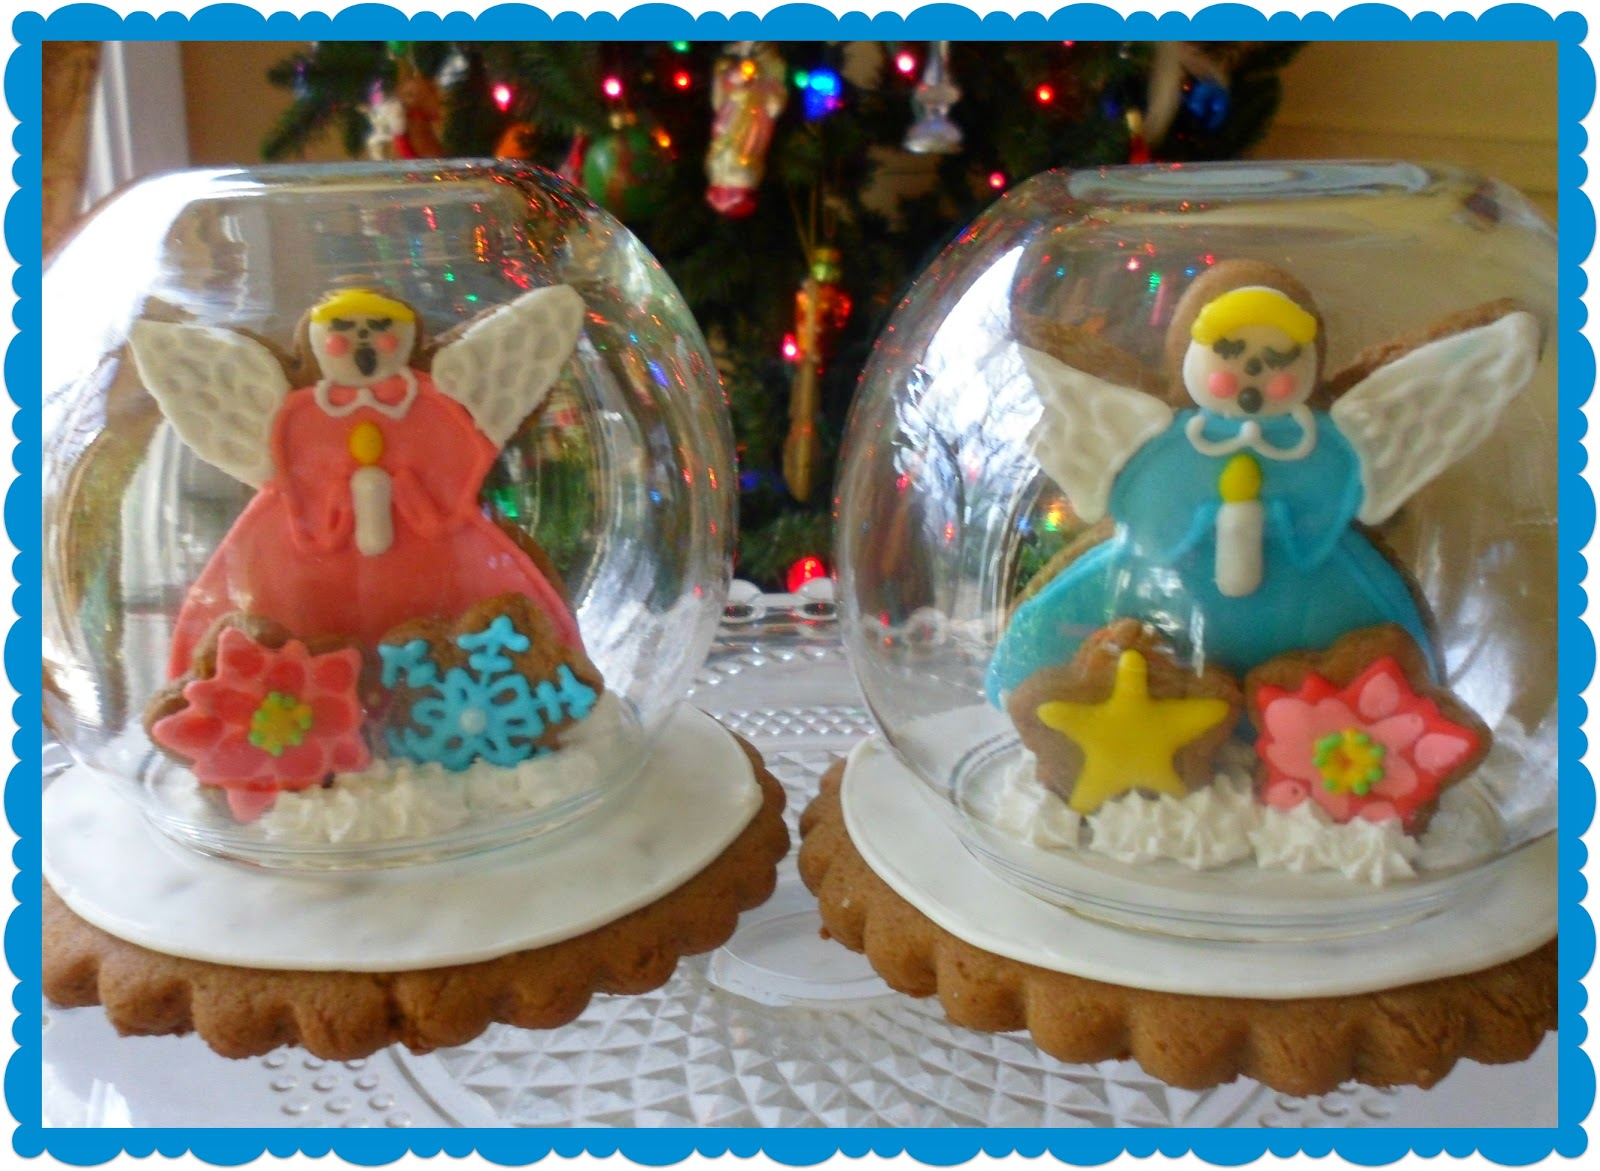 The Enchanted Oven Snow Globe Cookie Party Favors